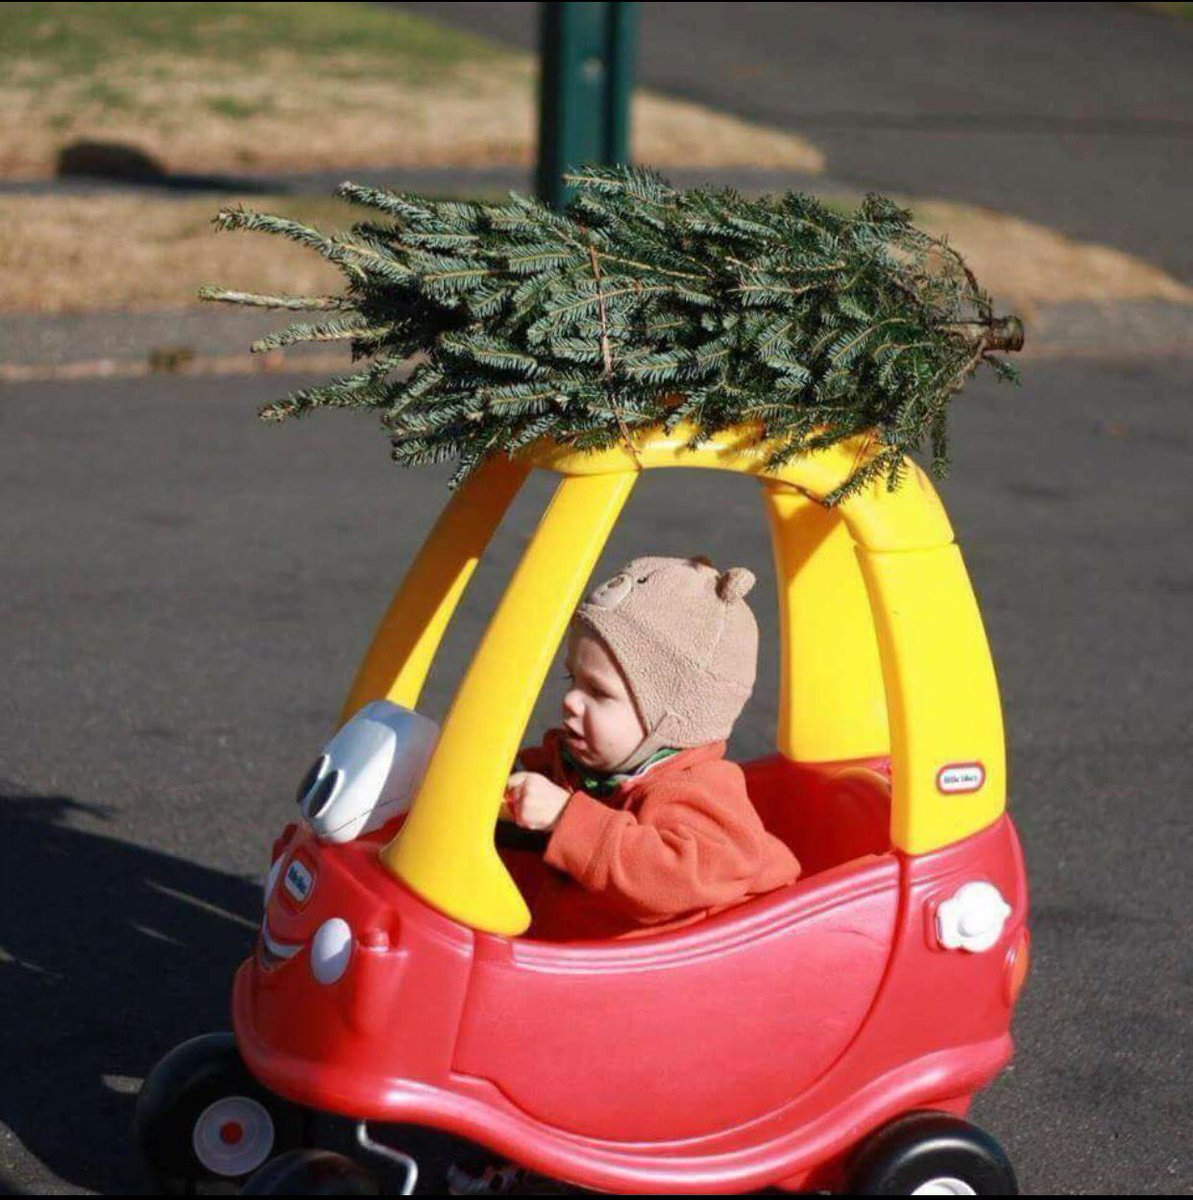 i drove to home depot and picked up our christmas tree dhrmgregorio si62025372 kathy102894 httpstcofcyfbwkdjk